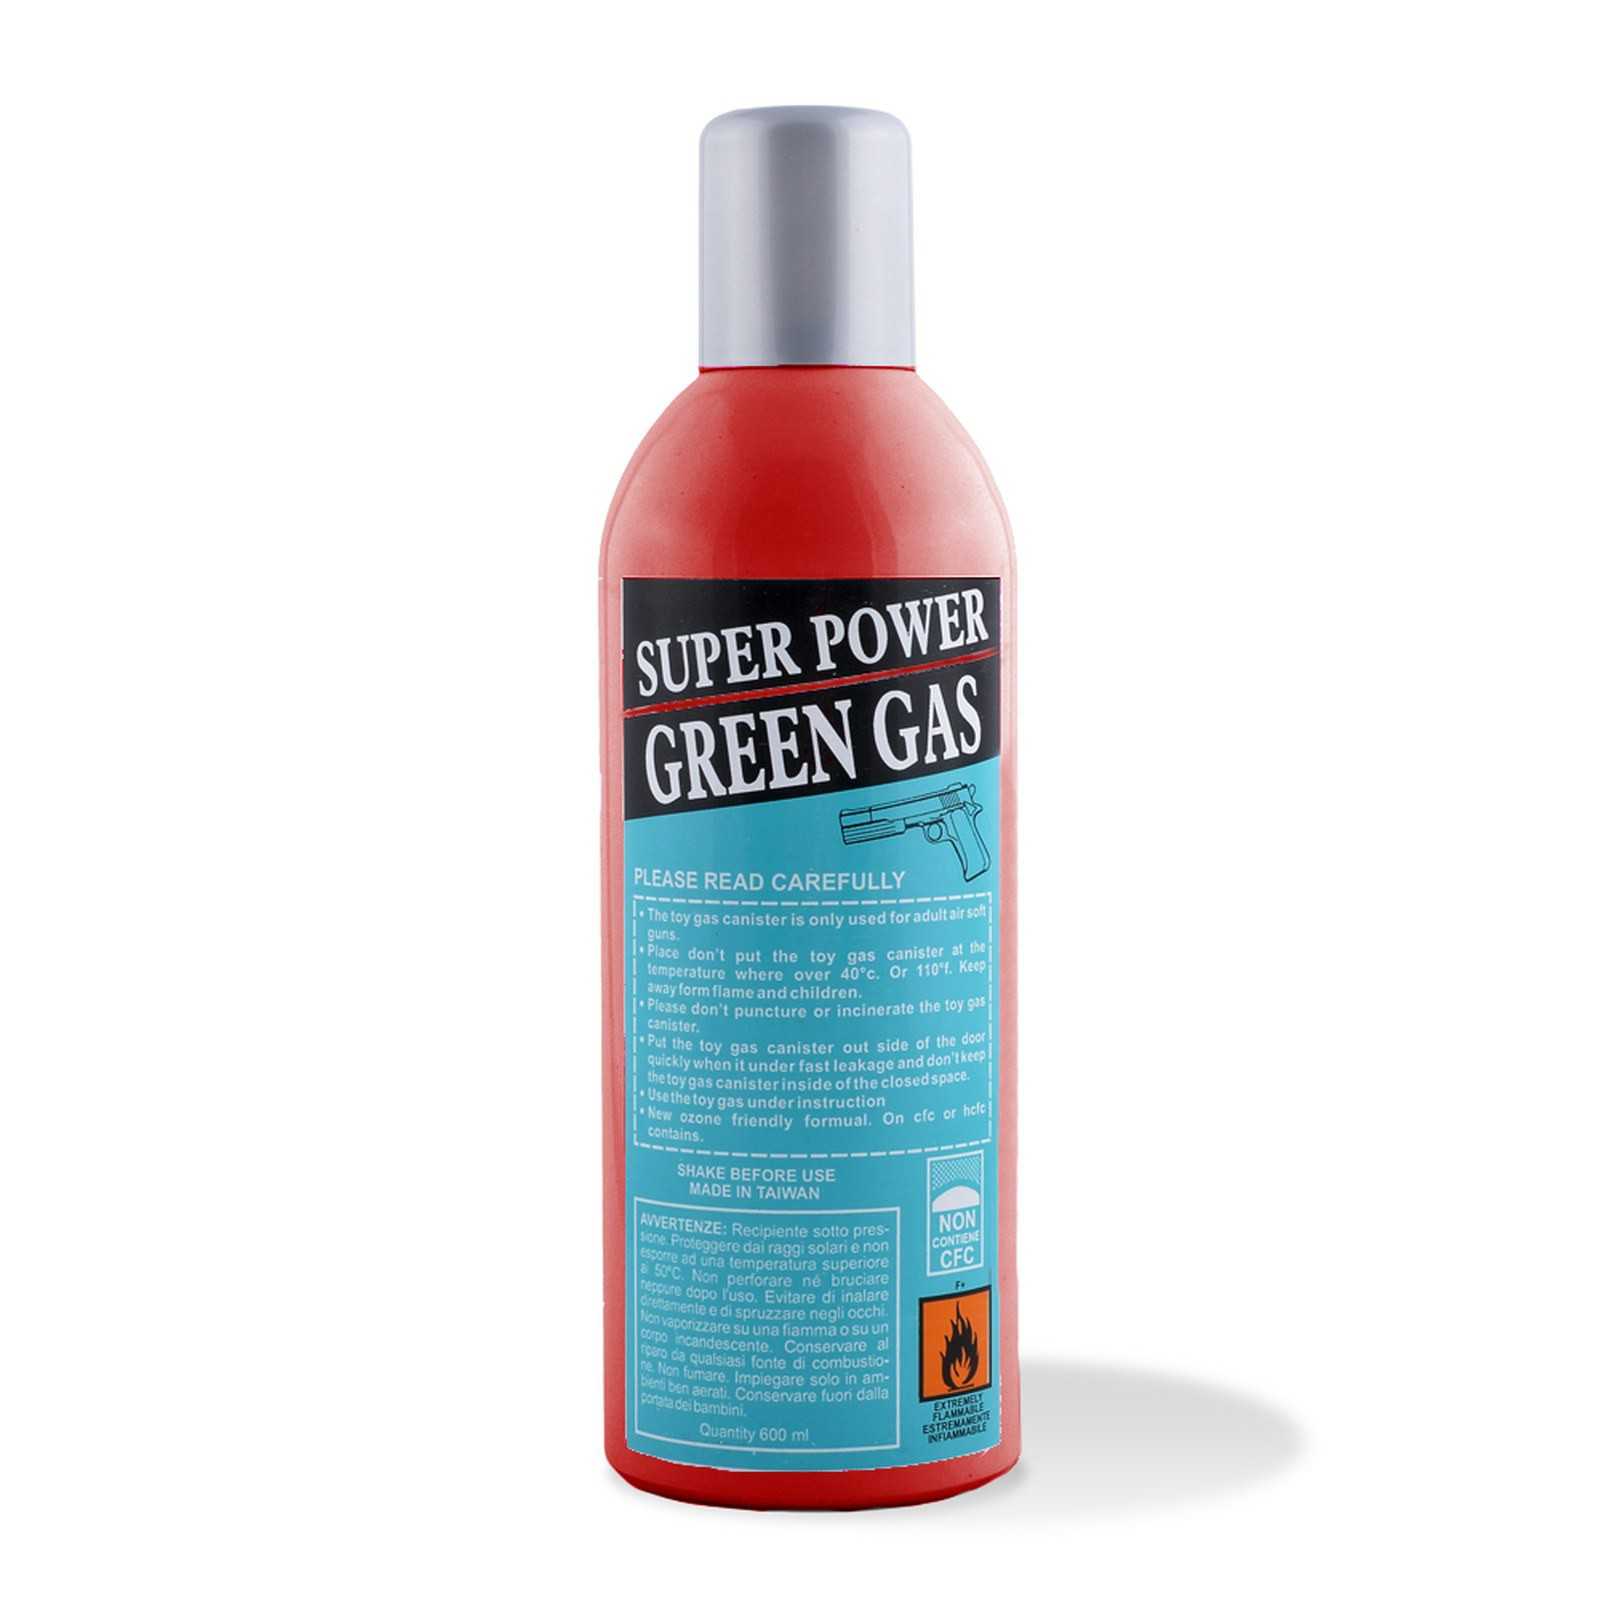 Bomboletta Bombola Green Gas Ricarica Softair Air Soft 600Ml Super Power Potente